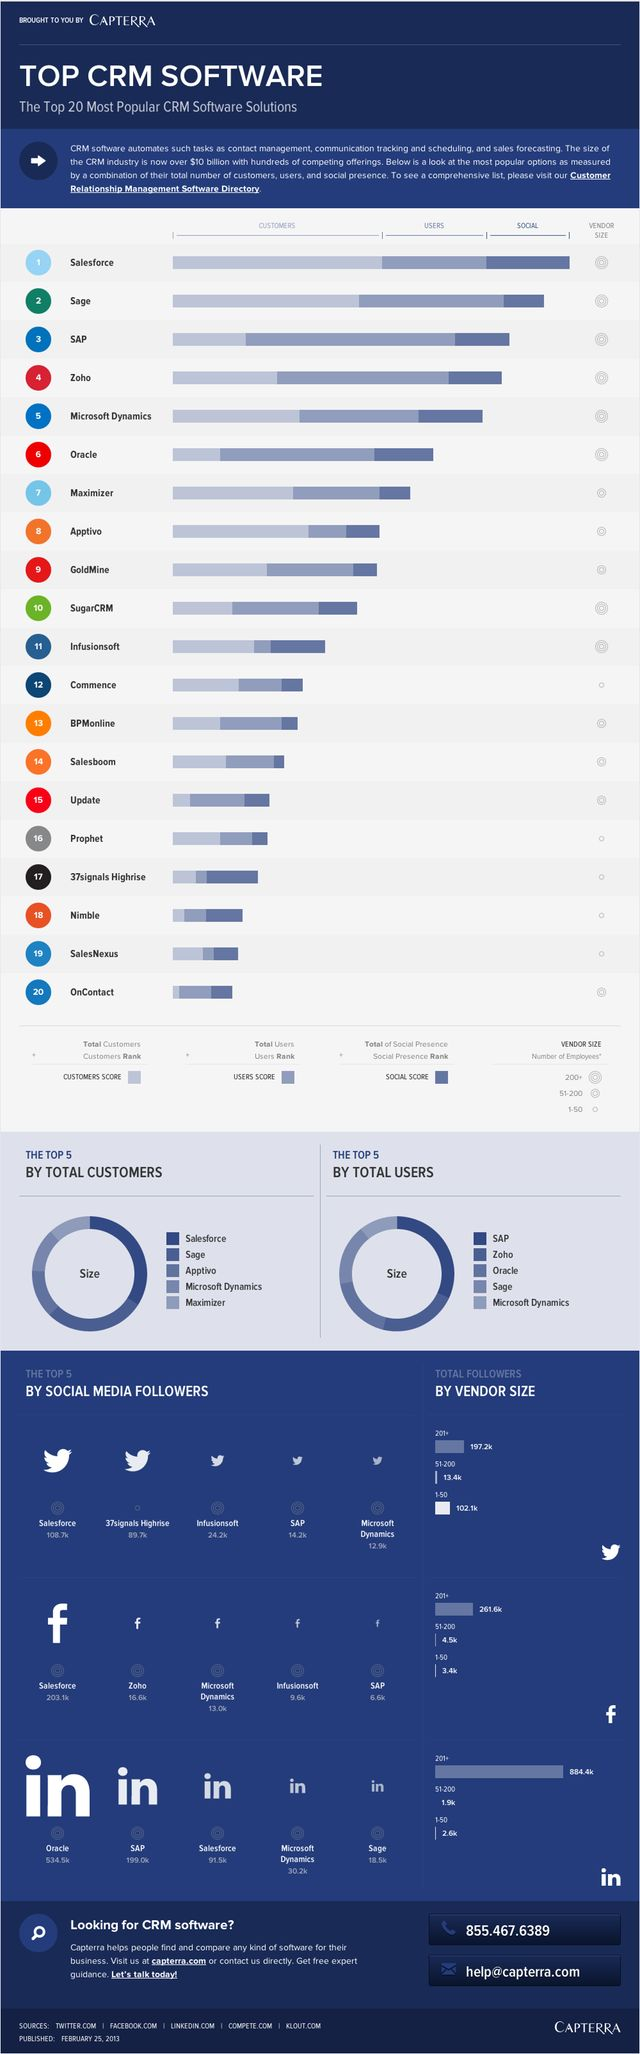 Here's a comparison of the 20 most popular CRM software solutions. elevation has…